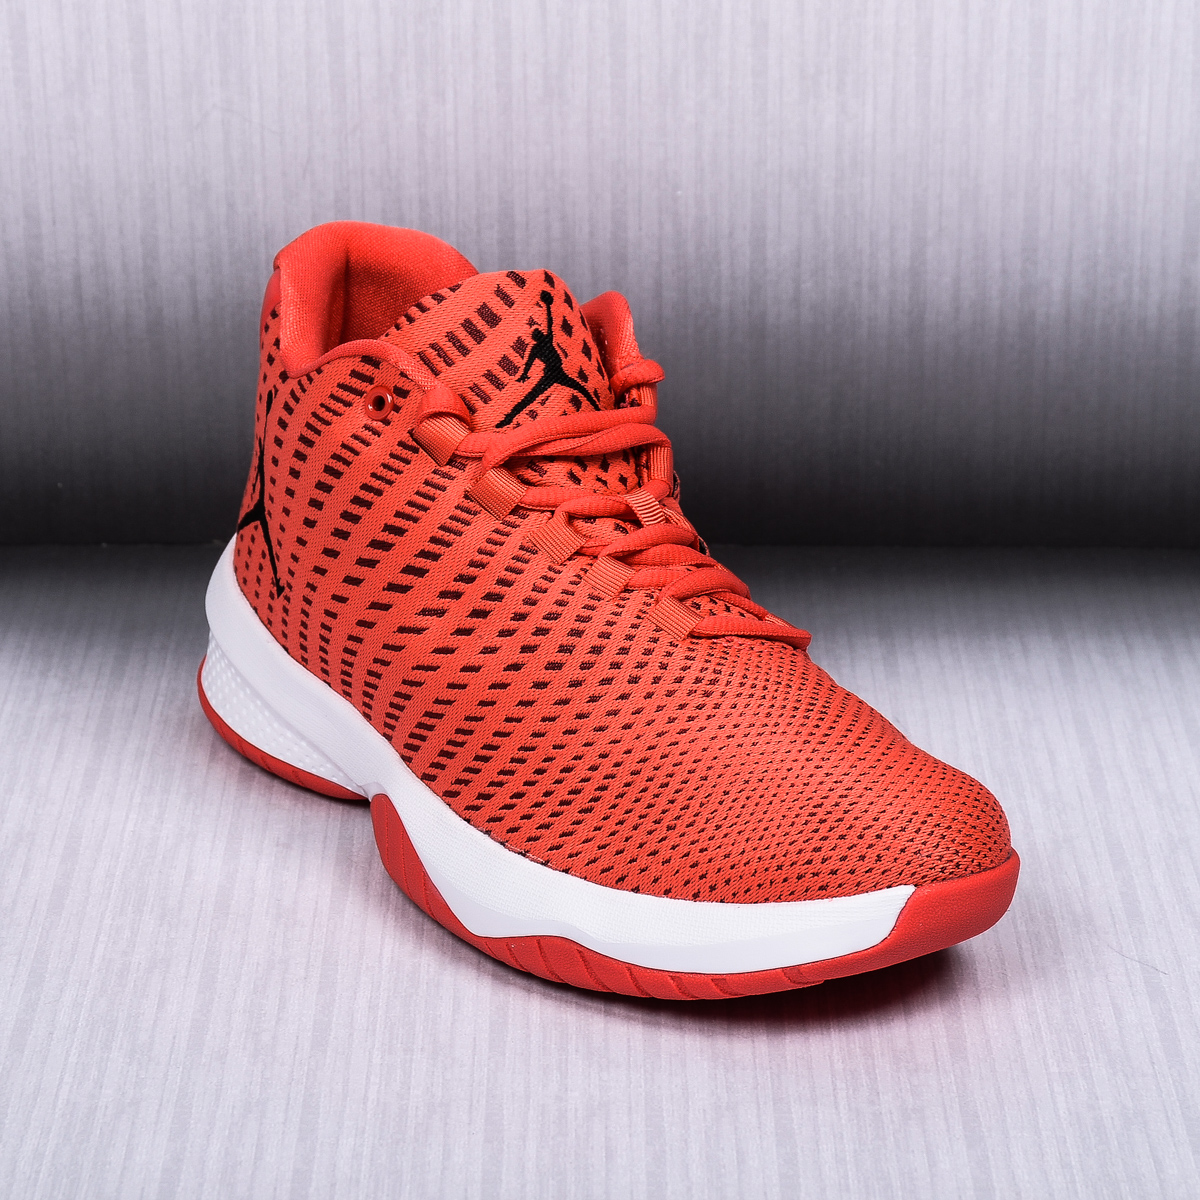 0250a8f703dadc Nike Air Jordan Extra Fly Men Basketball Shoes Sneakers Gym Red Black  854551-610